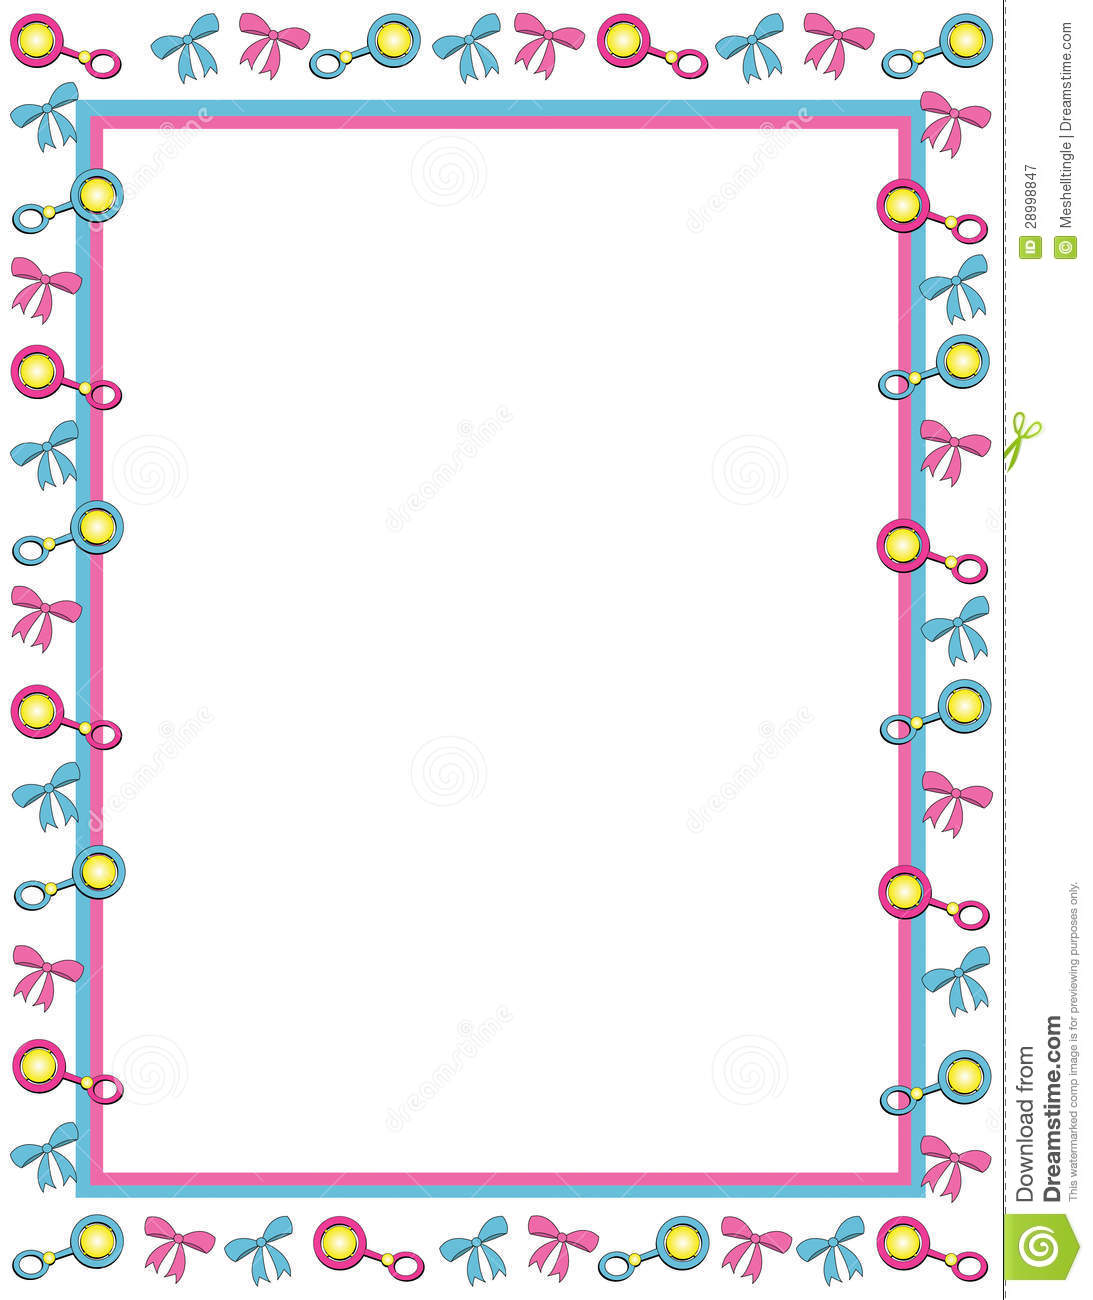 free clip art borders baby theme - photo #9